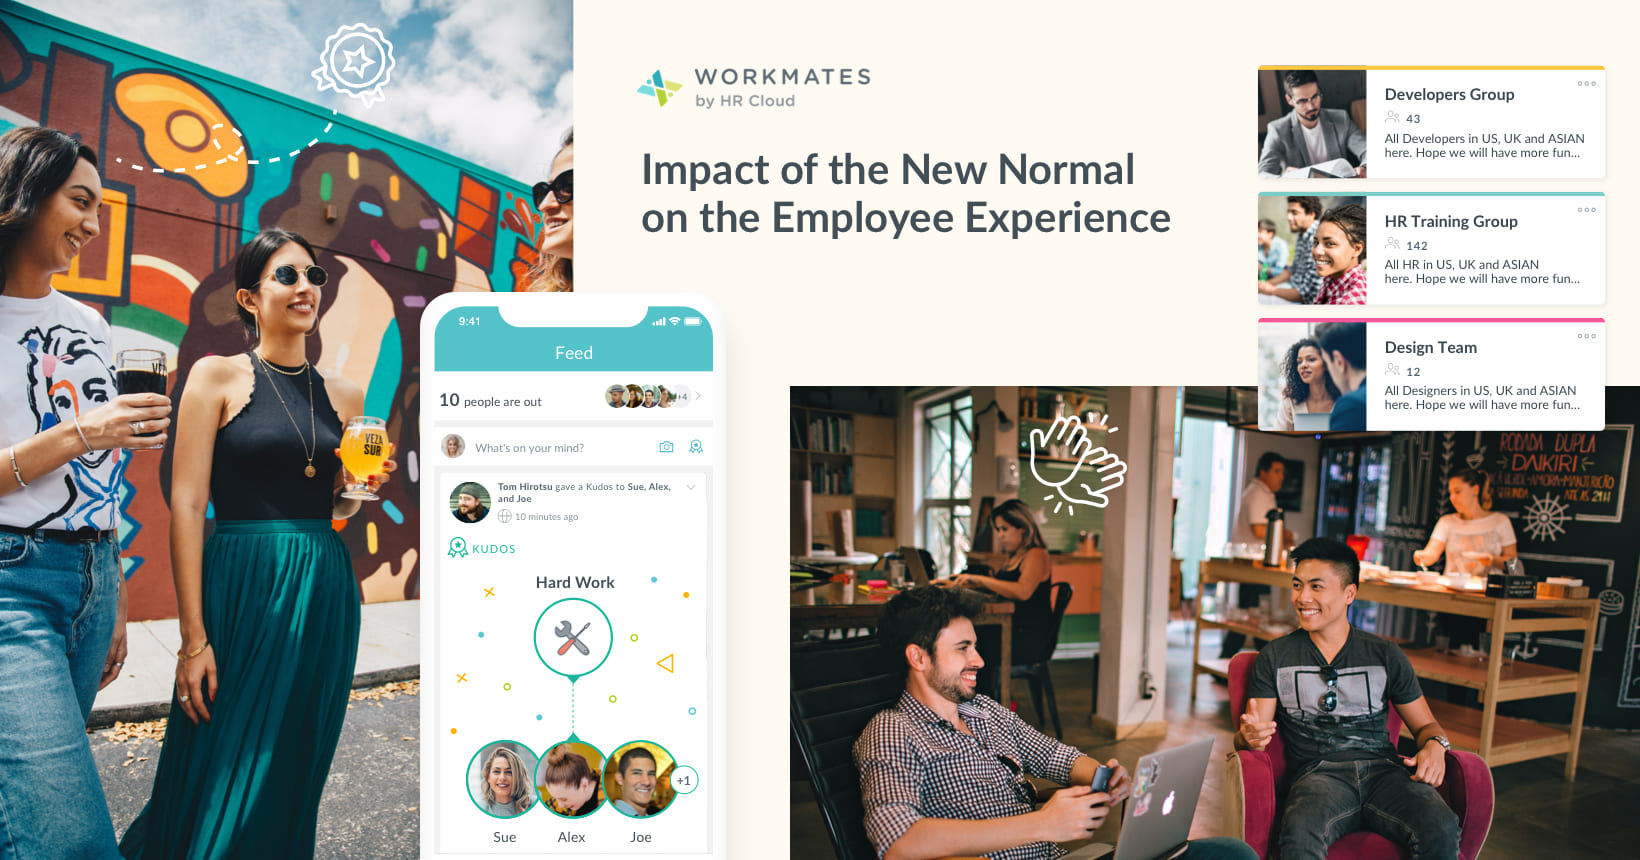 Impact of the New Normal on the Employee Experience